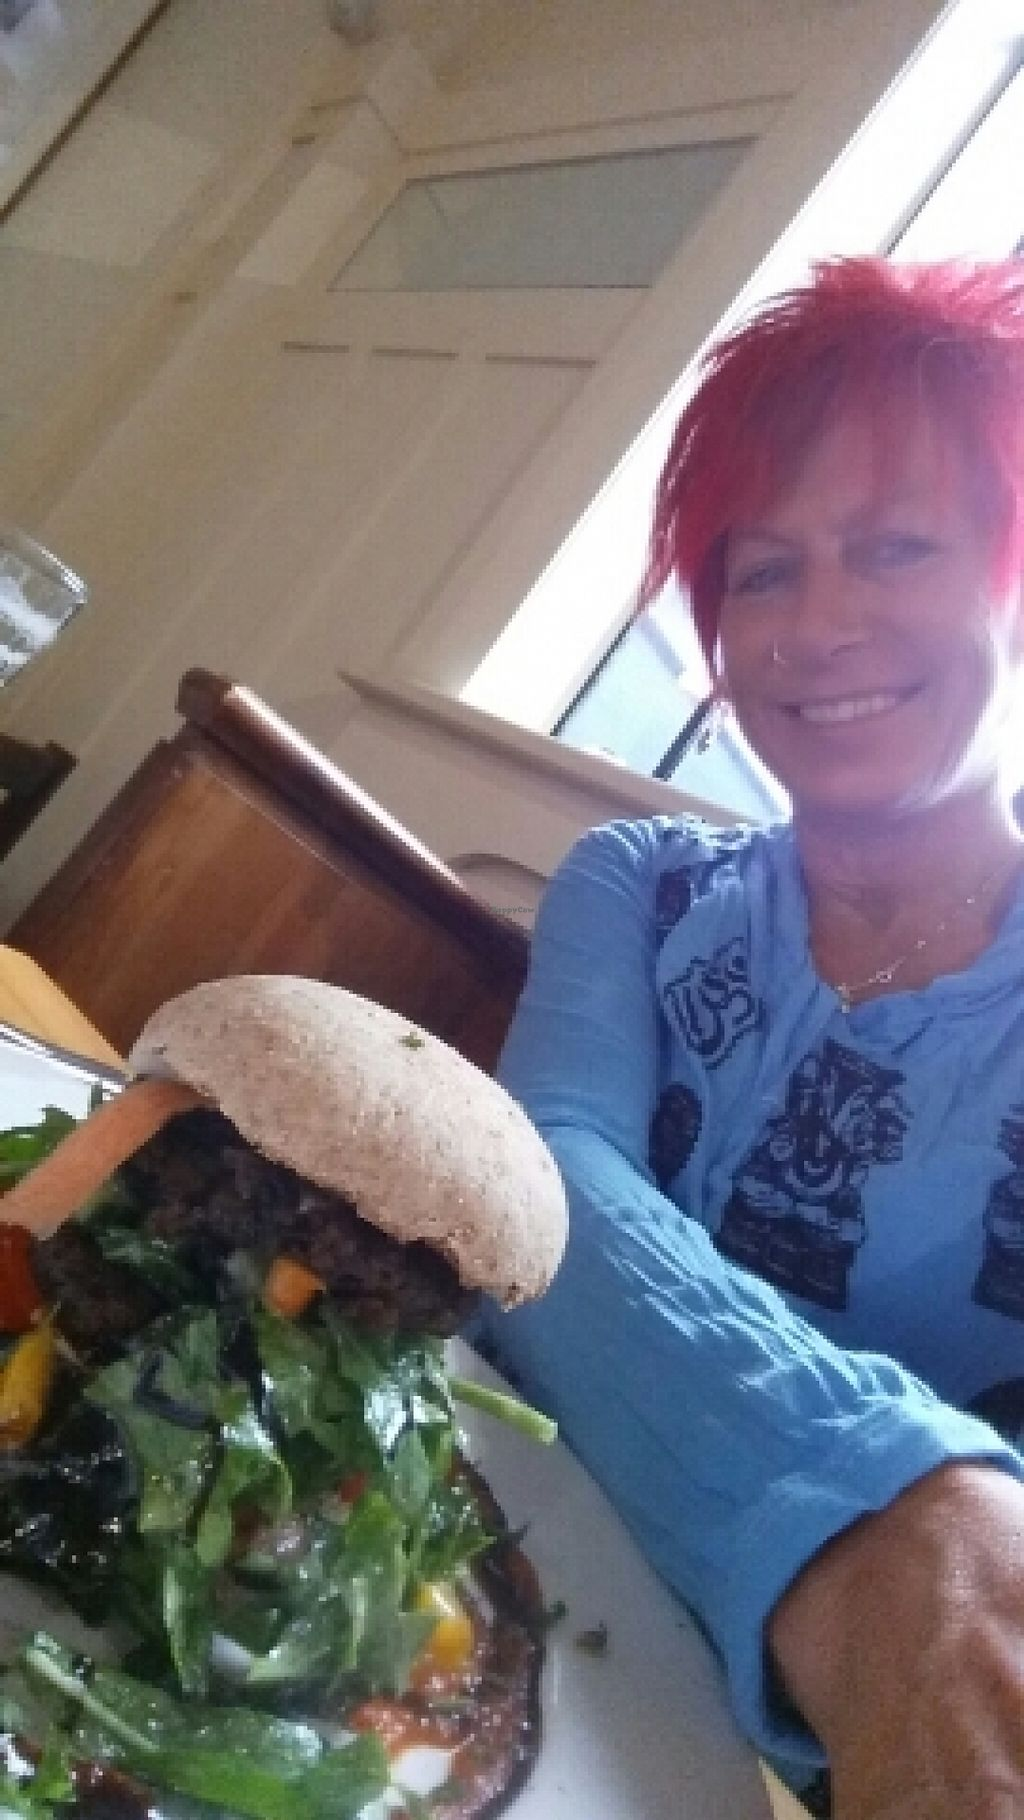 """Photo of Cafe Royale  by <a href=""""/members/profile/NessyBee"""">NessyBee</a> <br/>Vegan lentil burger <br/> November 18, 2015  - <a href='/contact/abuse/image/51920/125447'>Report</a>"""